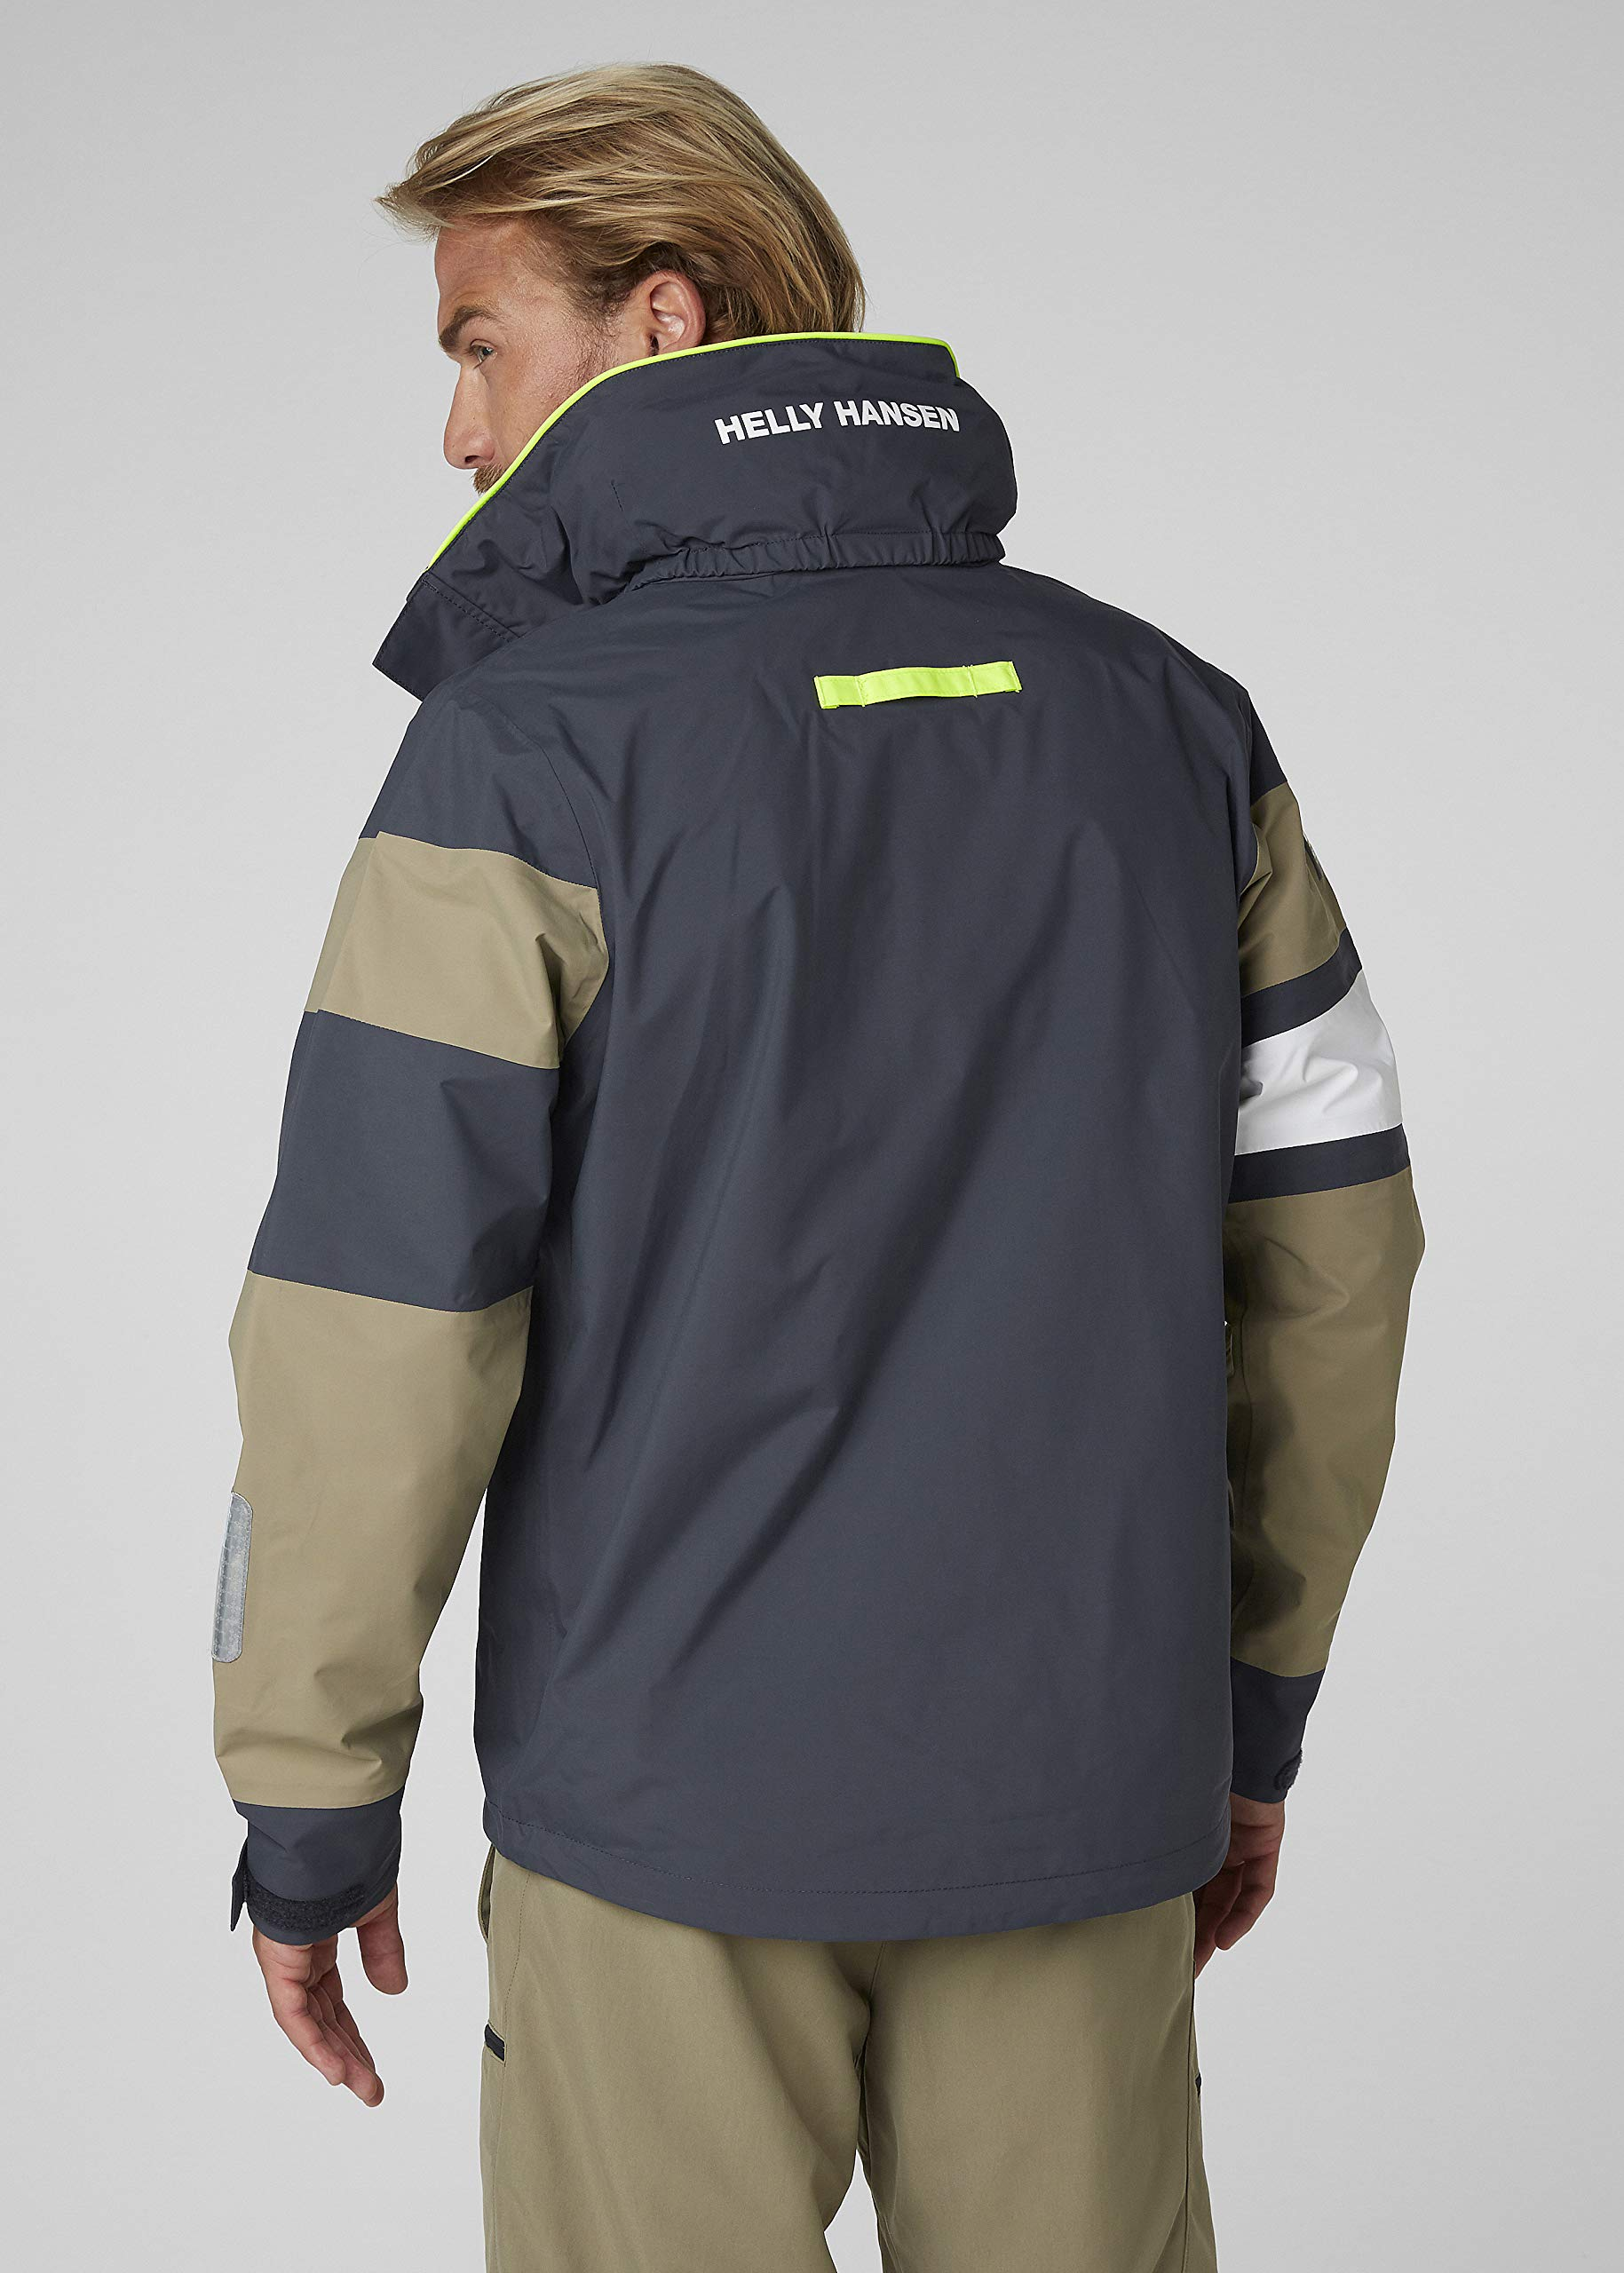 81fxGCHuwRL - Helly Hansen Waterproof Salt Light Sailing Jacket